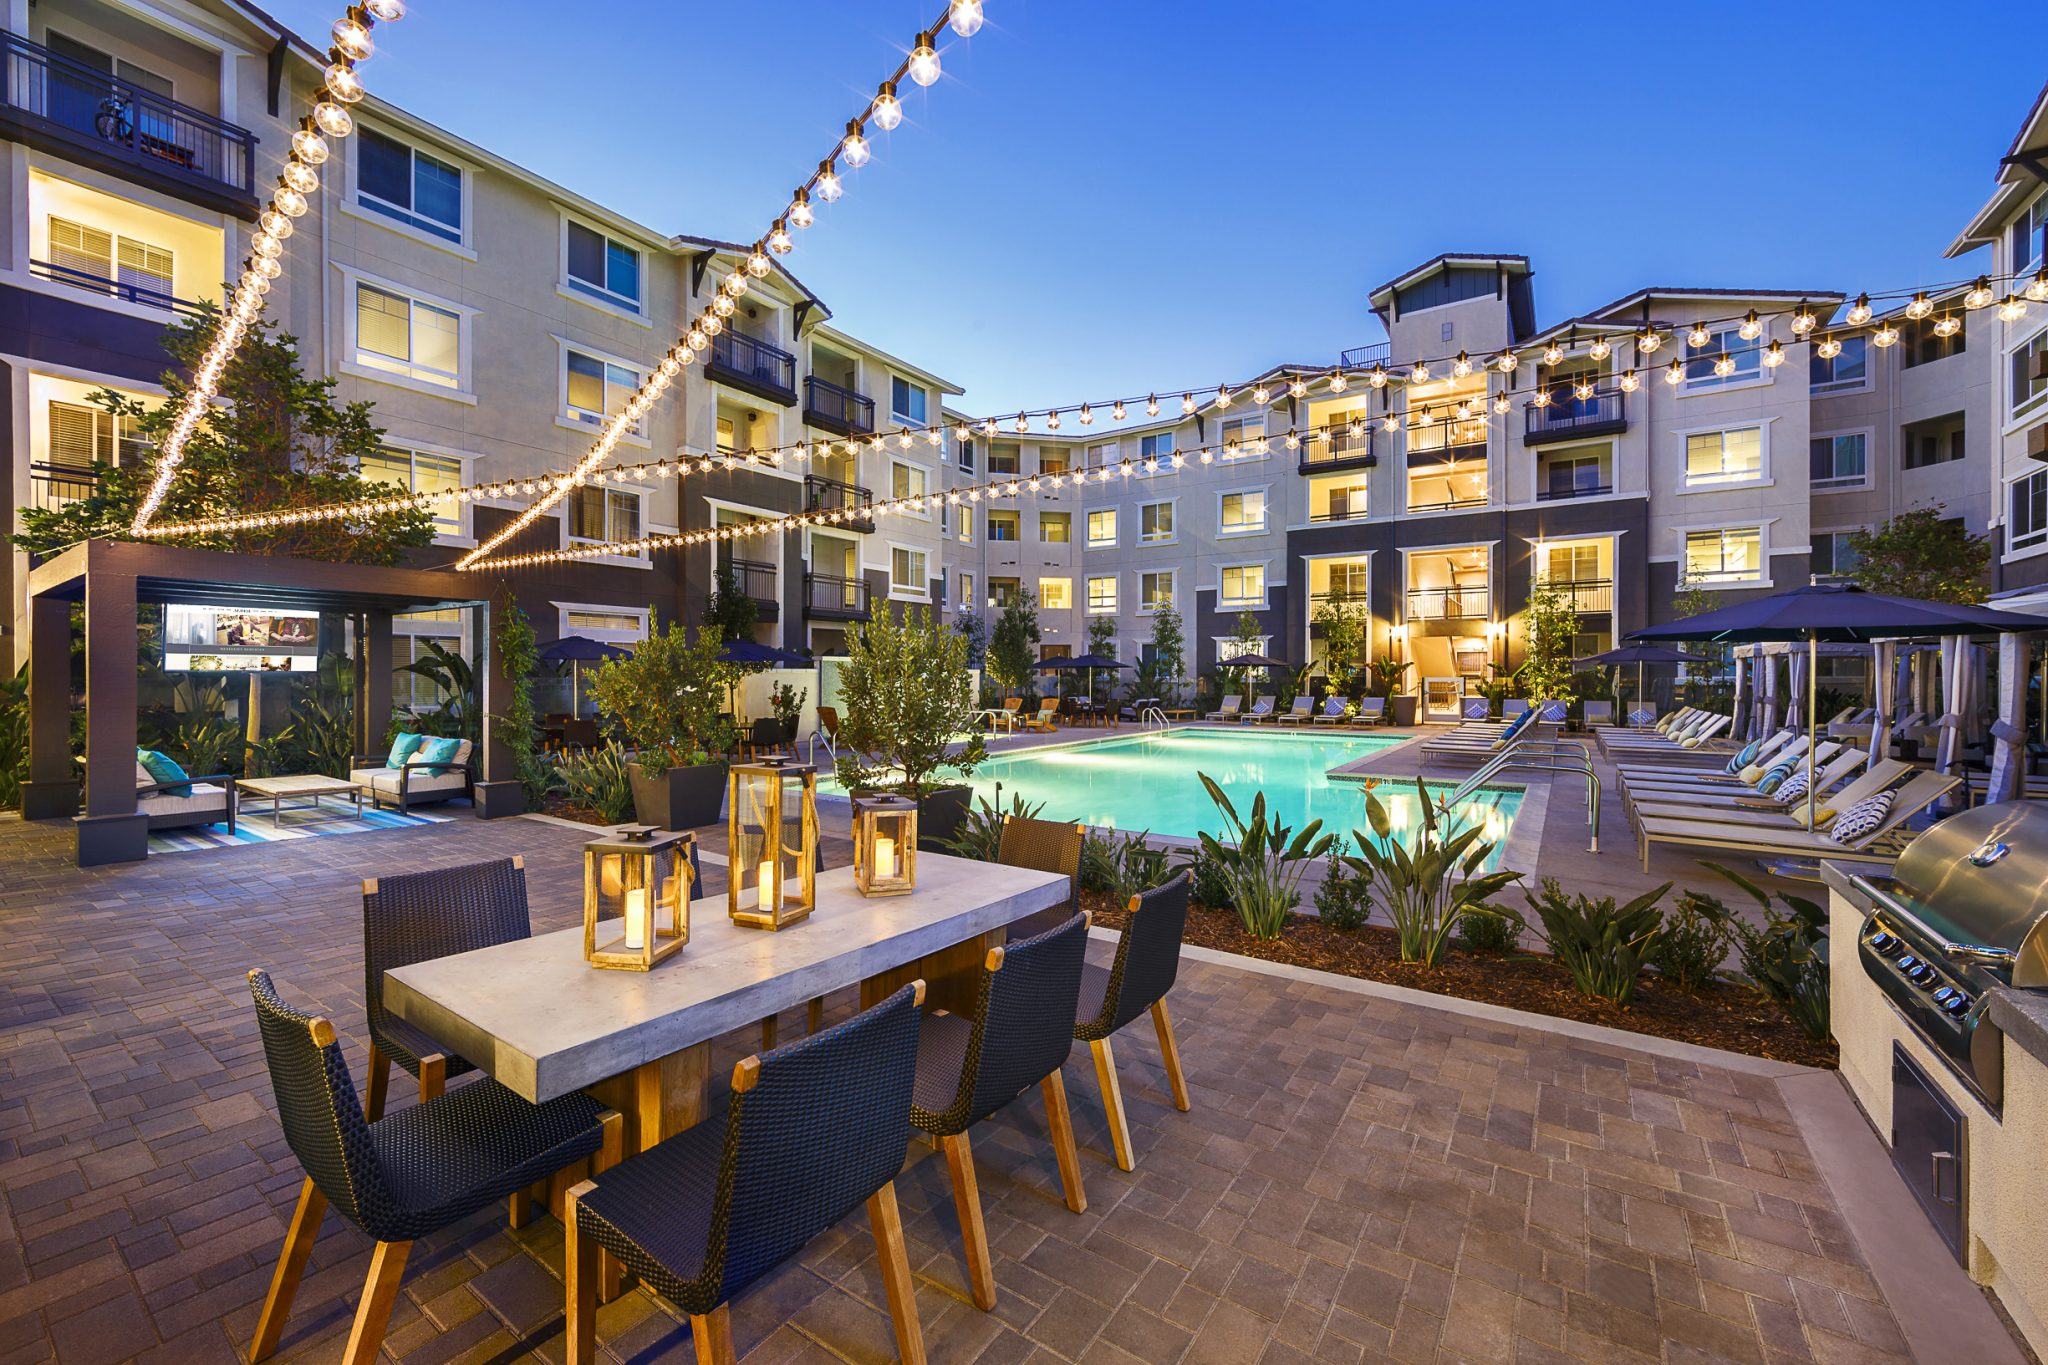 Exterior of apartment complex courtyard with barbeque, dining table and cafe lights overhead with pool in background